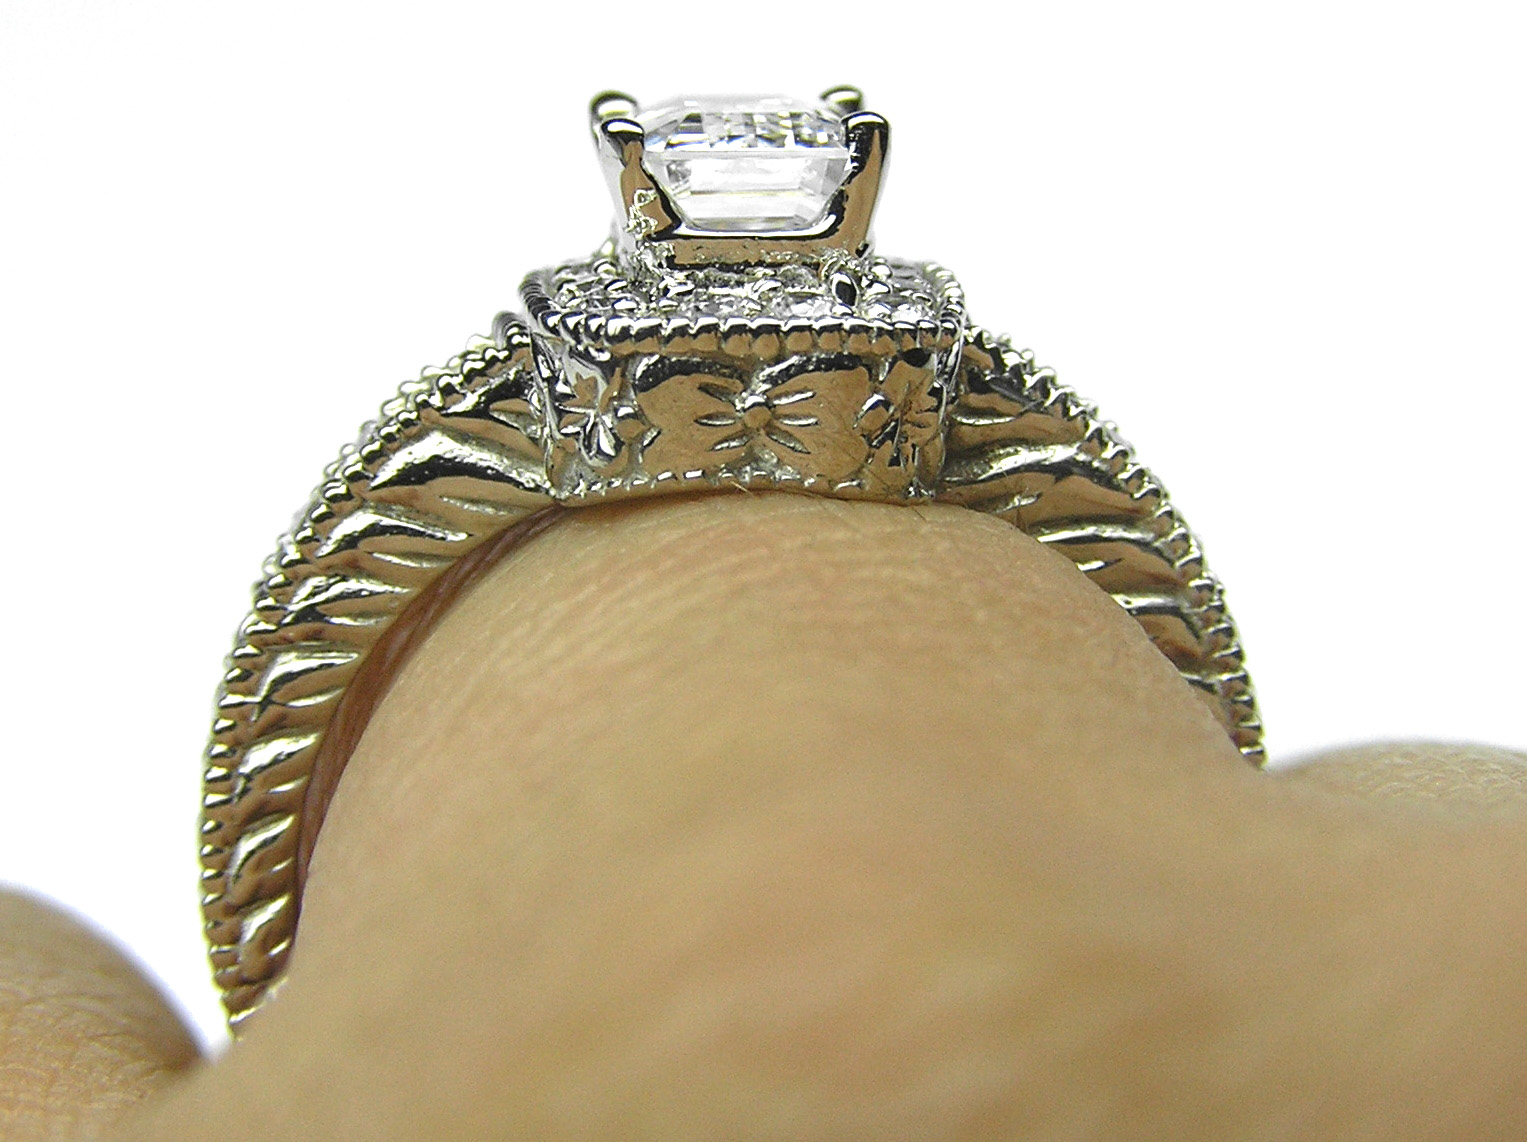 Emerald Cut Diamond Hale Engraved Engagement Ring in 14K White Gold